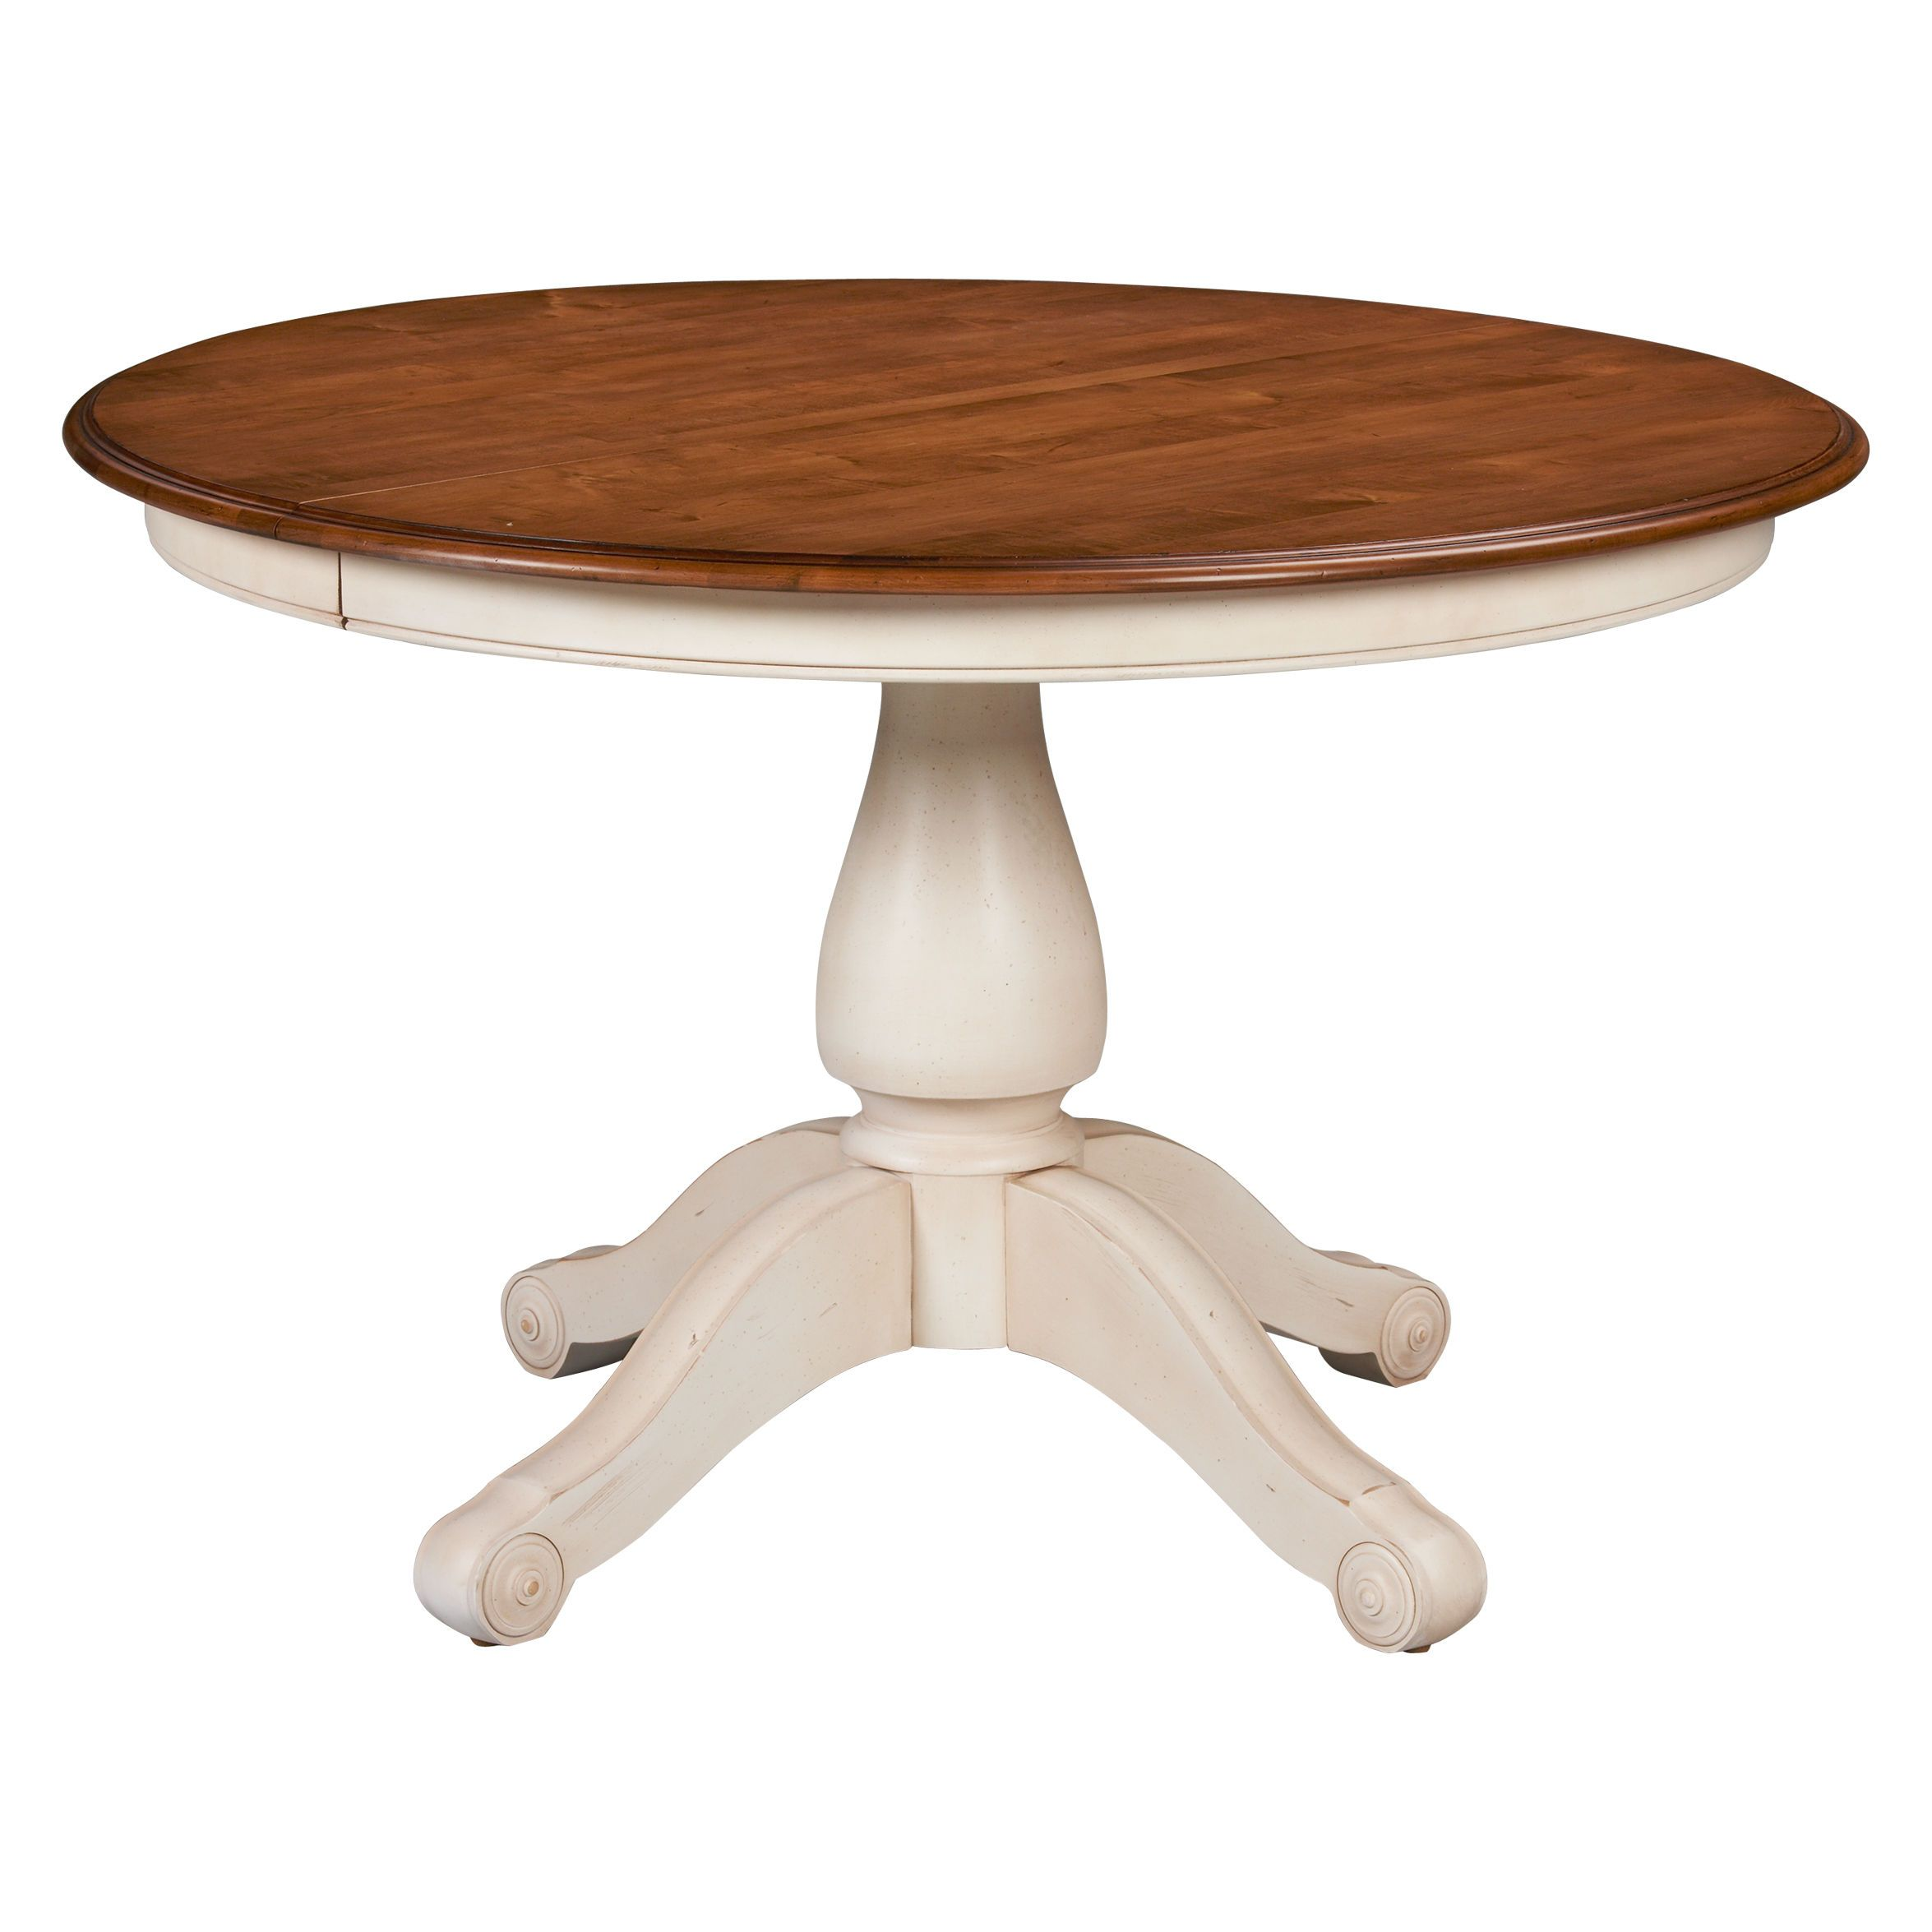 Adam Dining Table   Ethan Allen US Bellanca Bellanca Smith   Perfect For An  Eat In Kitchen Table